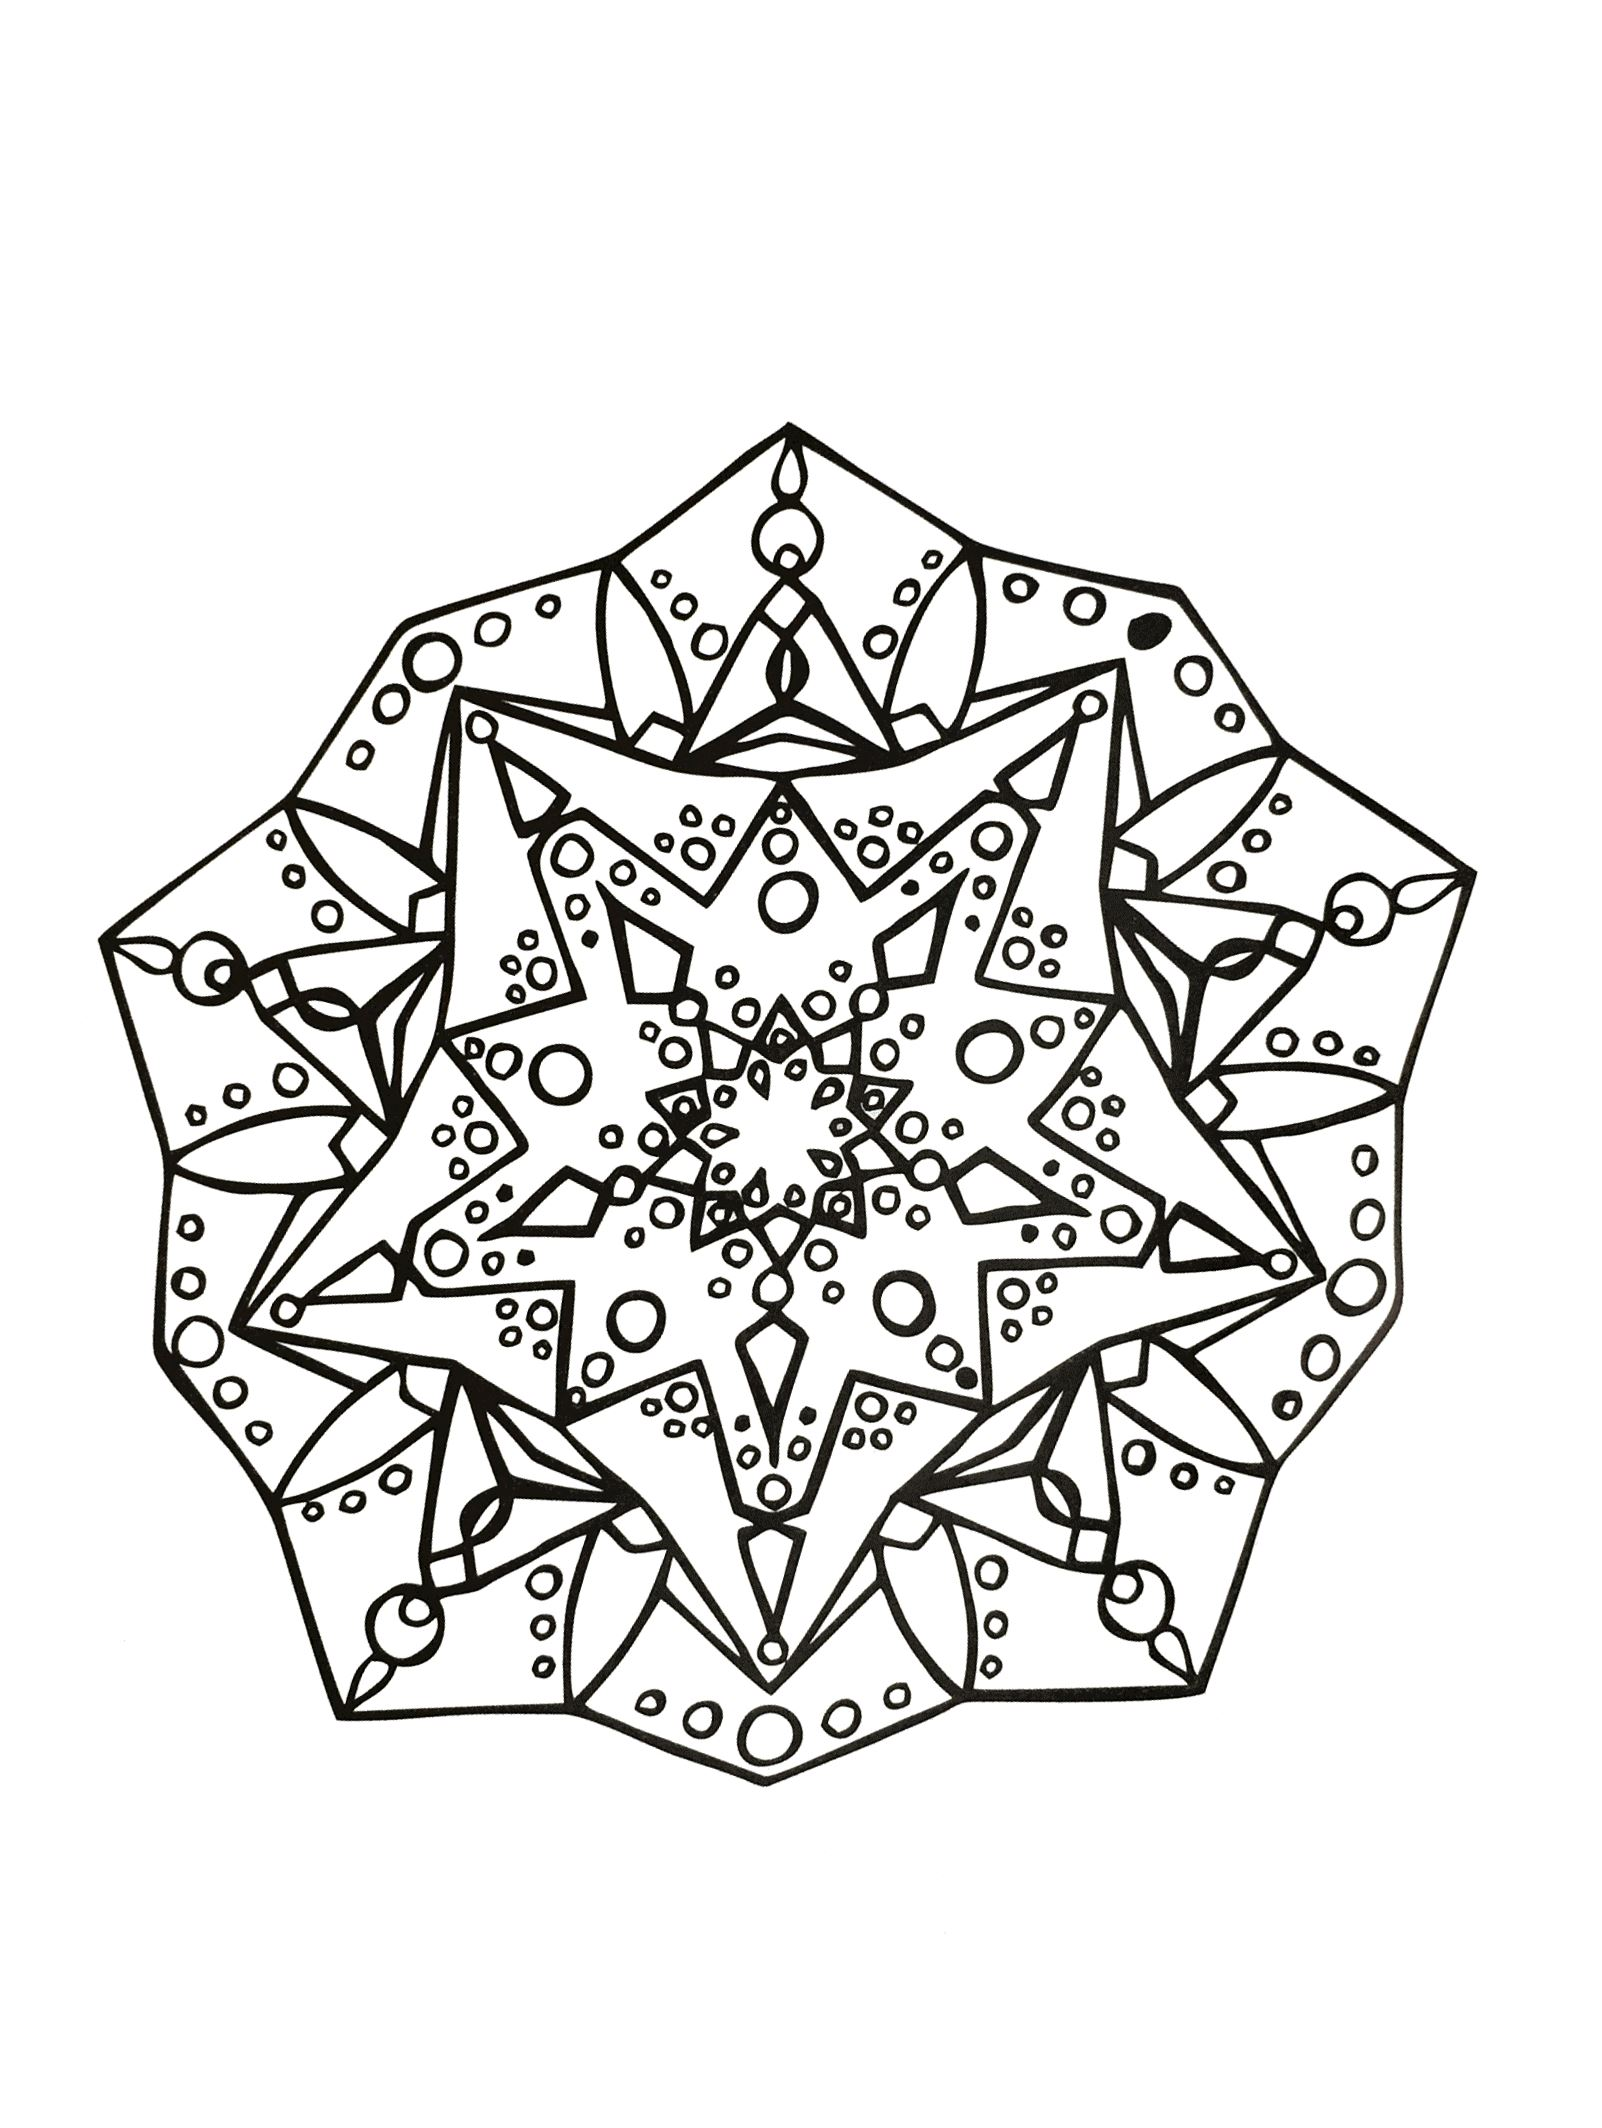 Prepare your pens and pencils to color this Mandala full of small details and intricate areas. This one is special : it's not regular ! Feel free to let your instincts decide where to color, and what colors to choose.